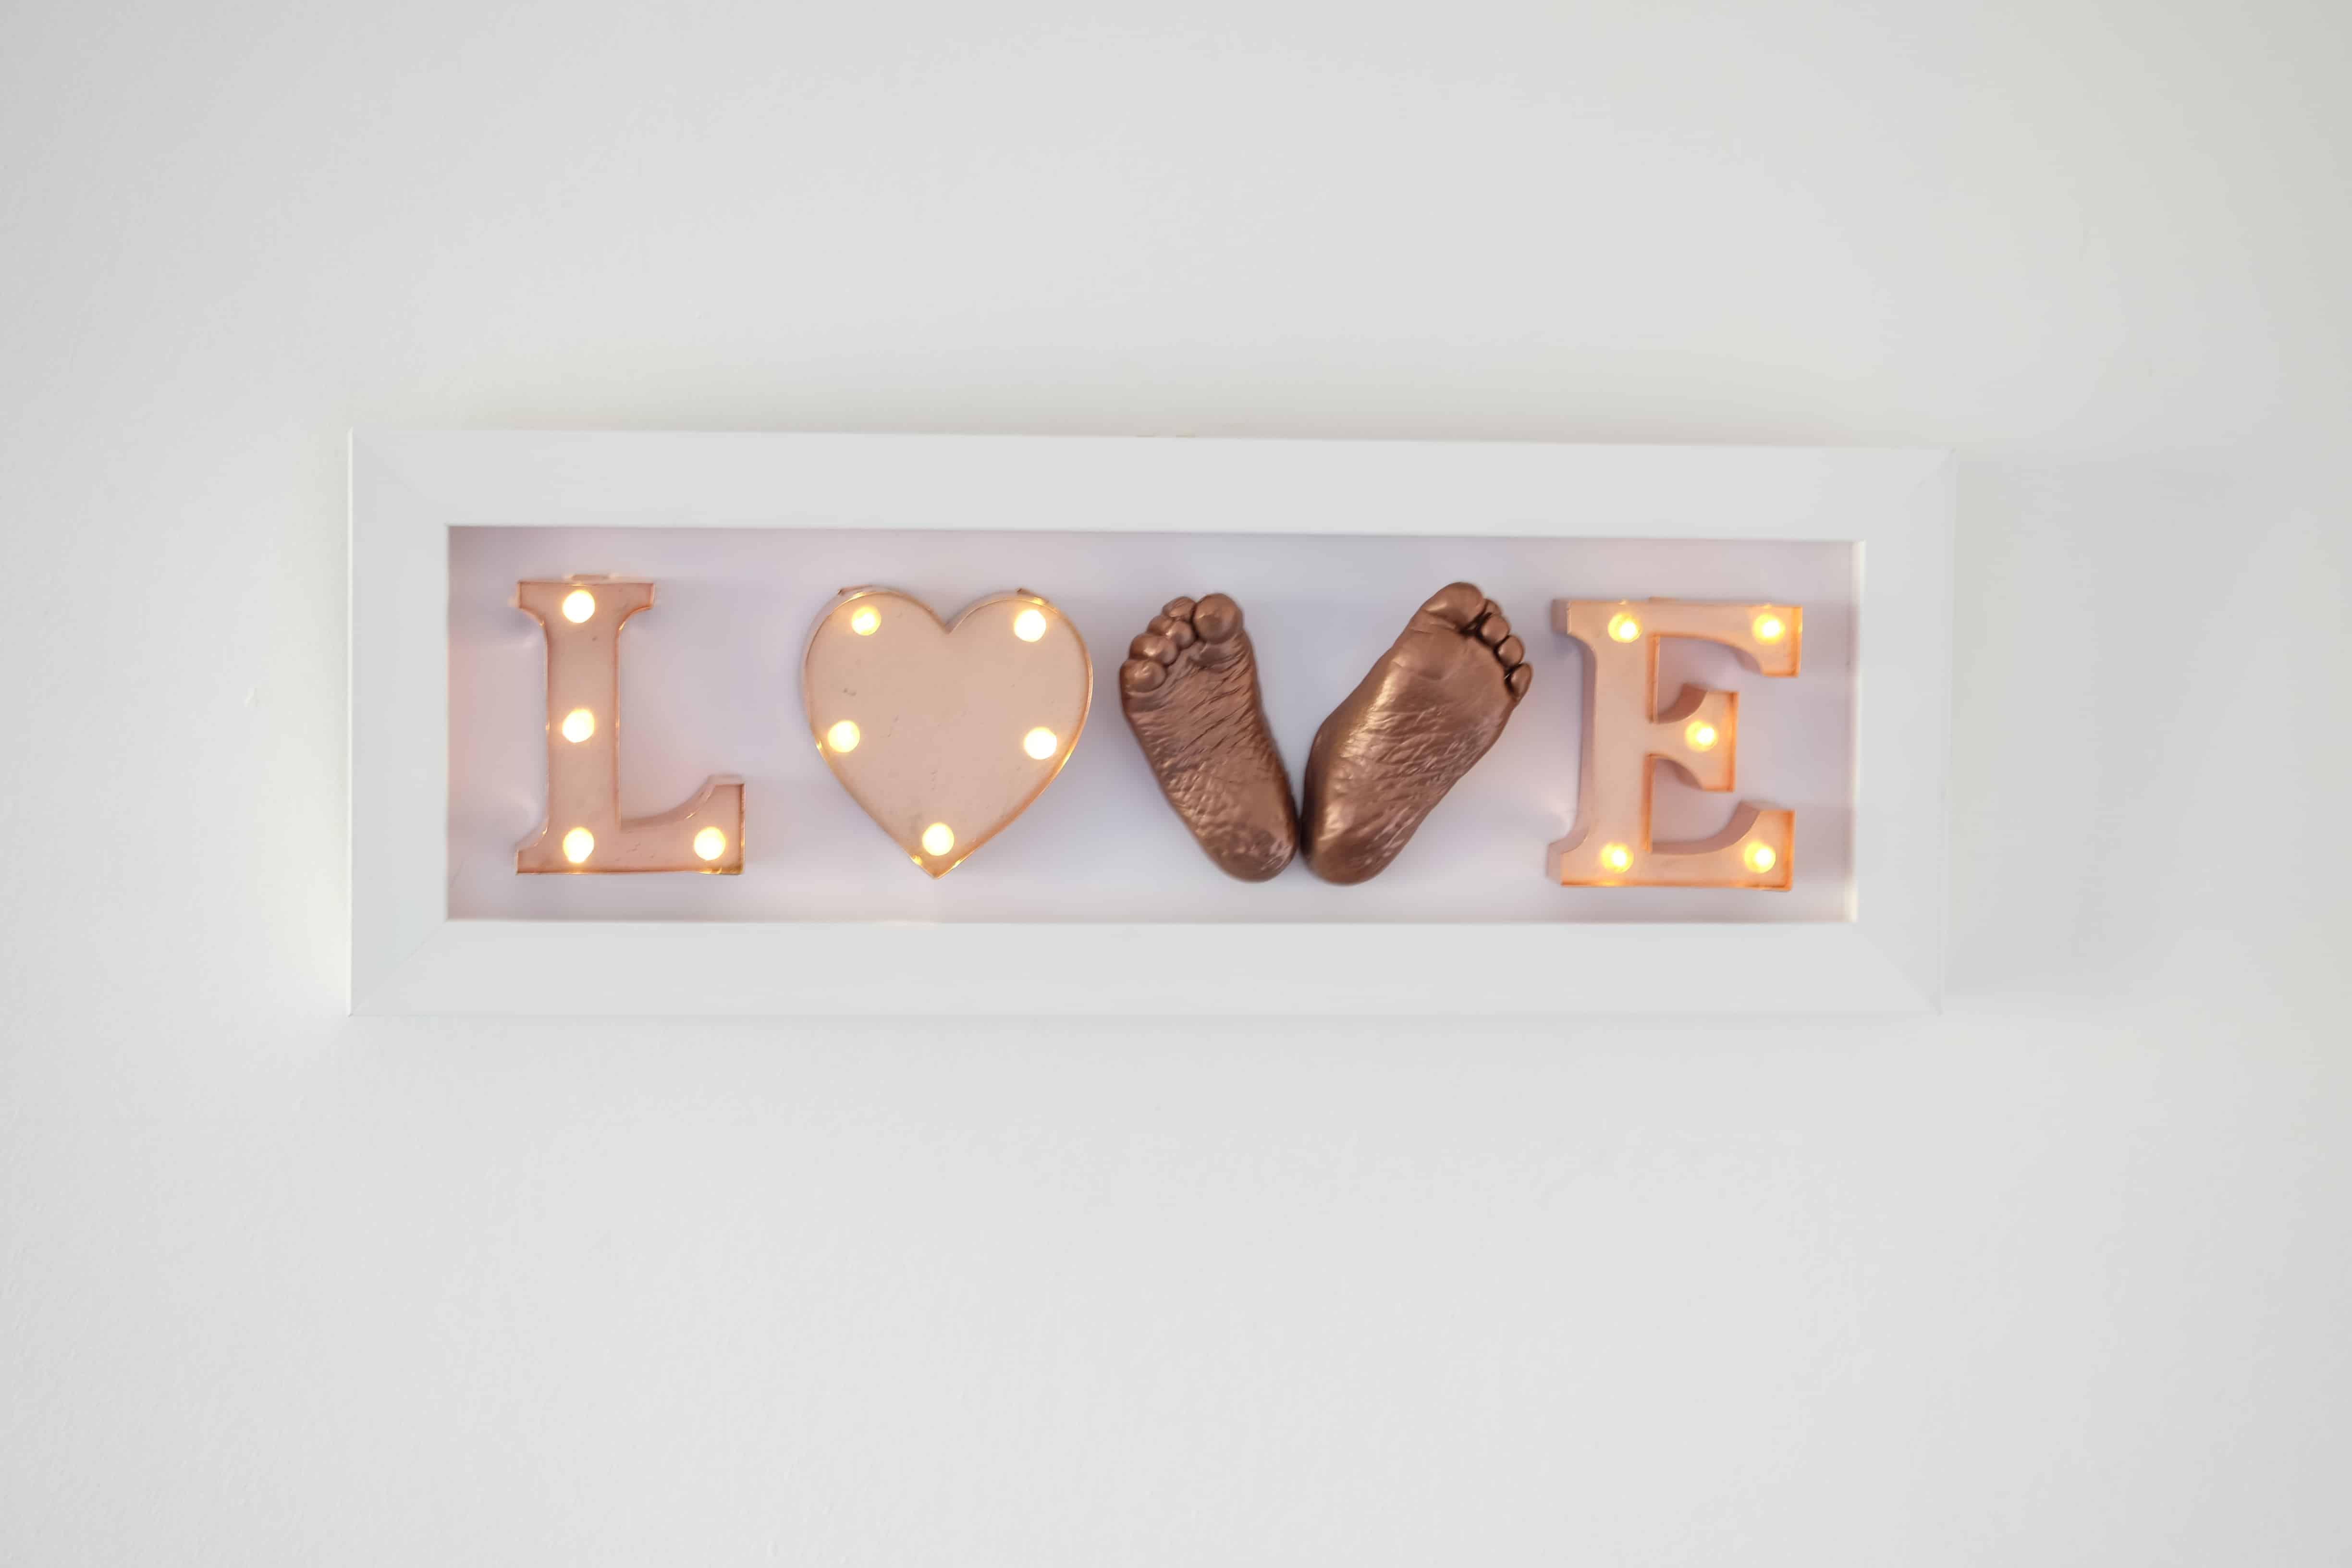 3D Baby Feet with Light Up Letters Love Frame